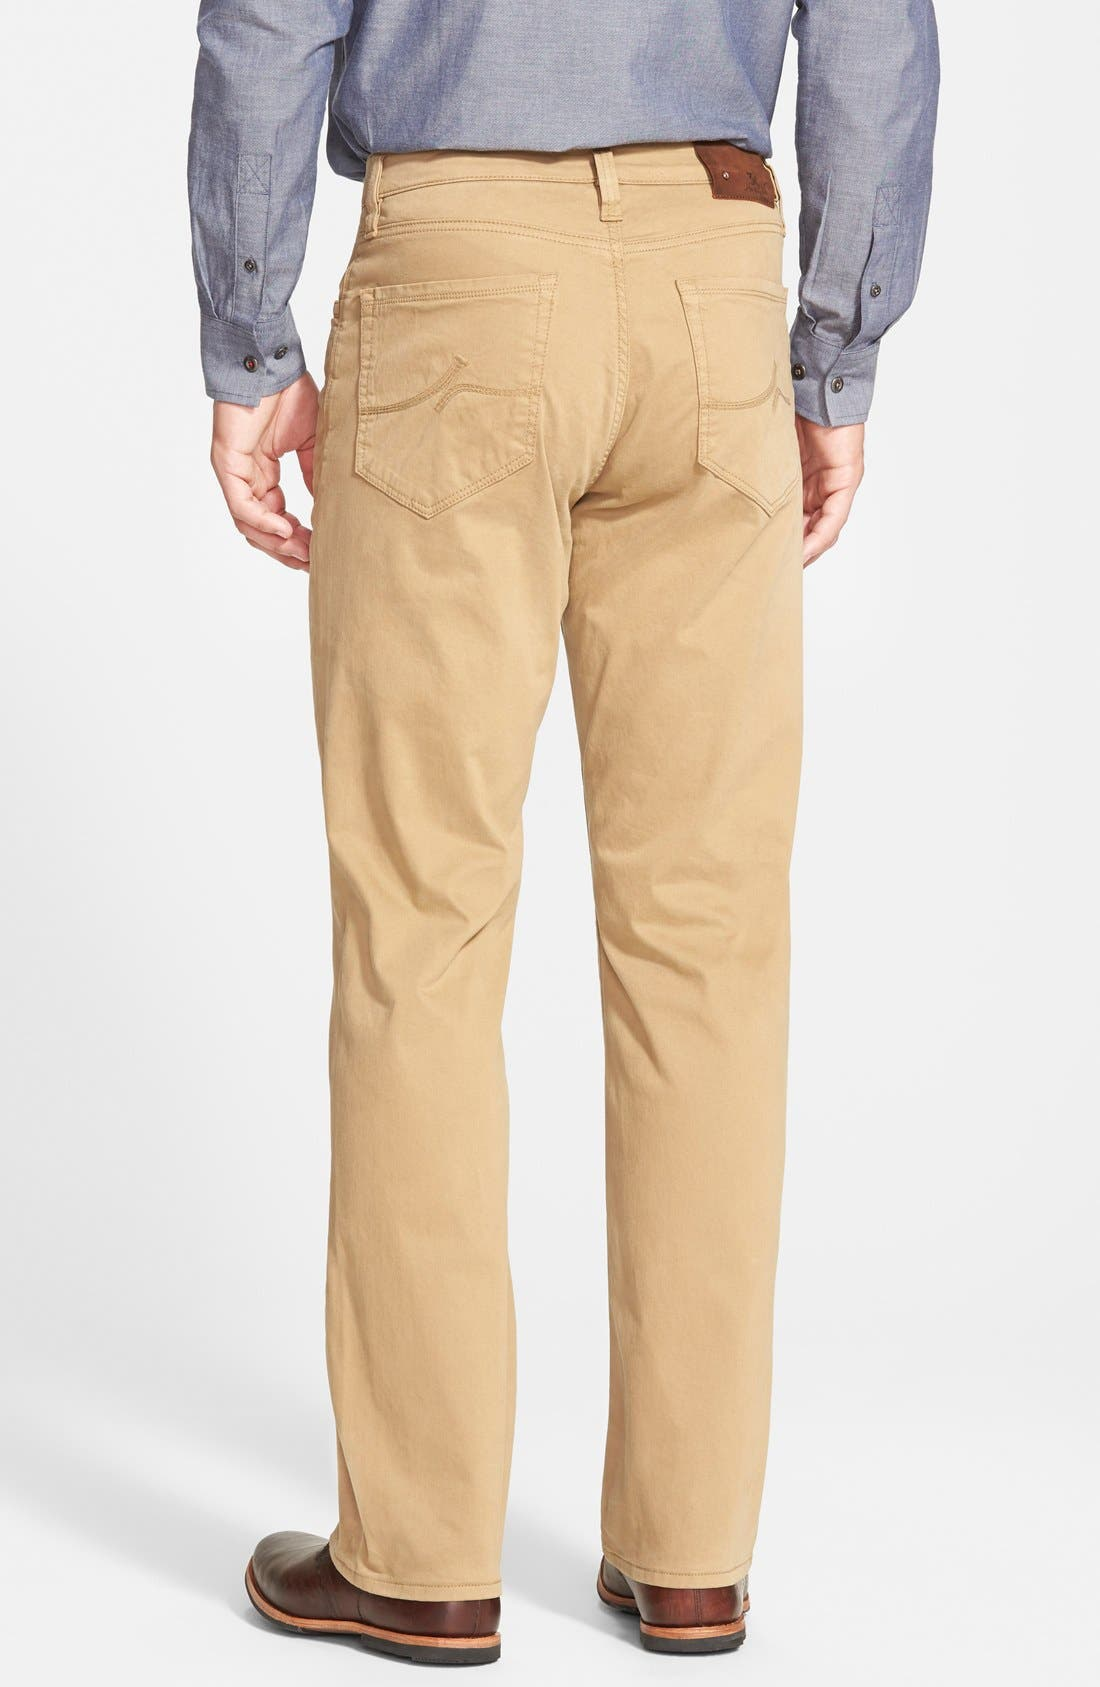 'Charisma' Classic Relaxed Fit Pants,                             Alternate thumbnail 2, color,                             Beige/ Khaki